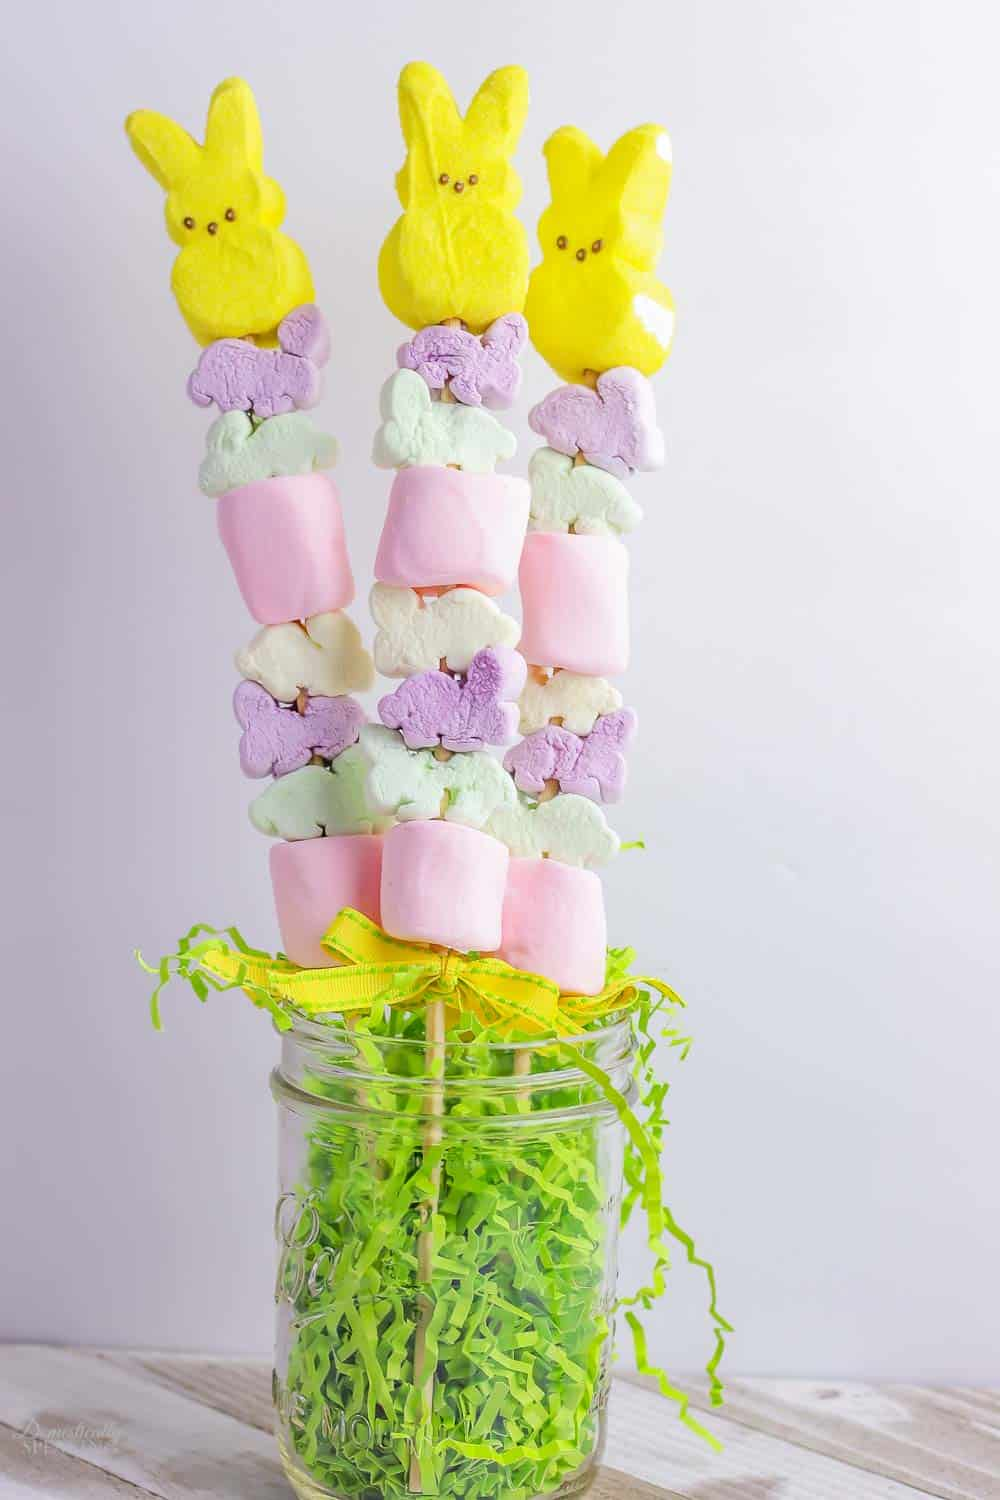 Easter Peeps Marshmallow Kabobs in a mason jar with faux grass